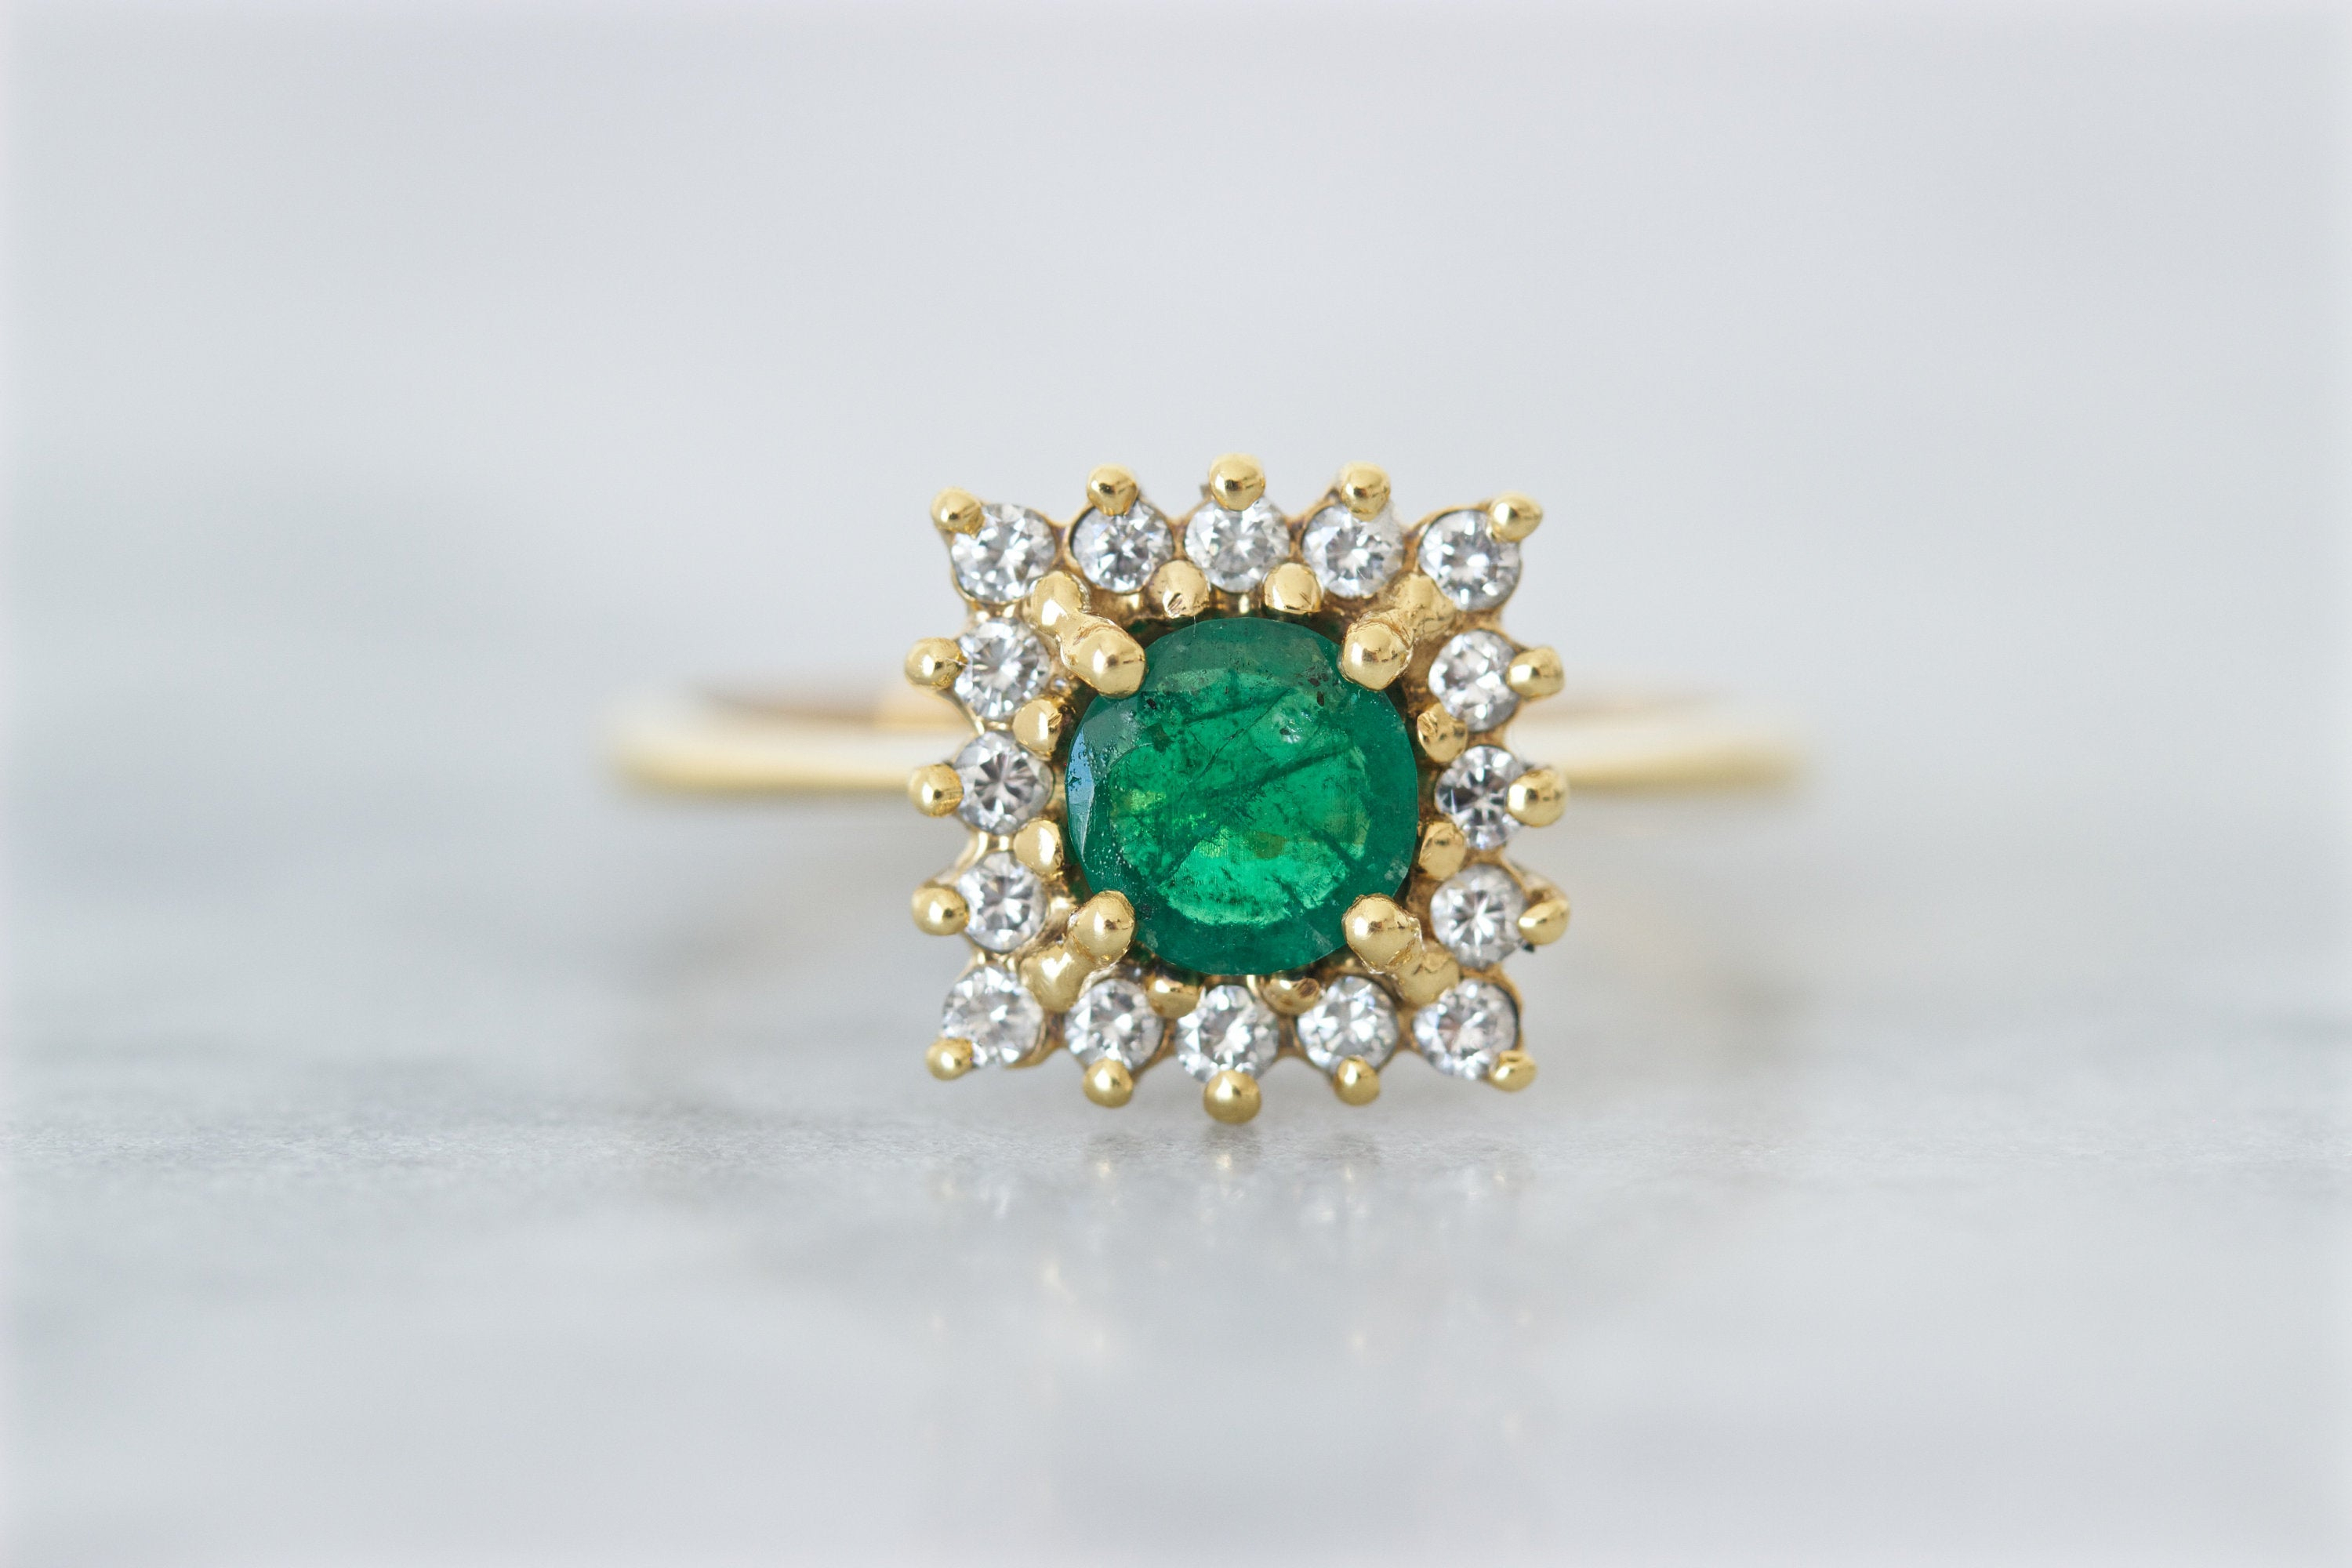 Vintage Emerald Engagement Ring, Square Diamond Halo, 18K Yellow Gold,  April May Birthstone Jewelry For Women, Size 7.25, 1980S Fine Rings With Regard To Most Recently Released Sparkling Square Halo Rings (Gallery 24 of 25)